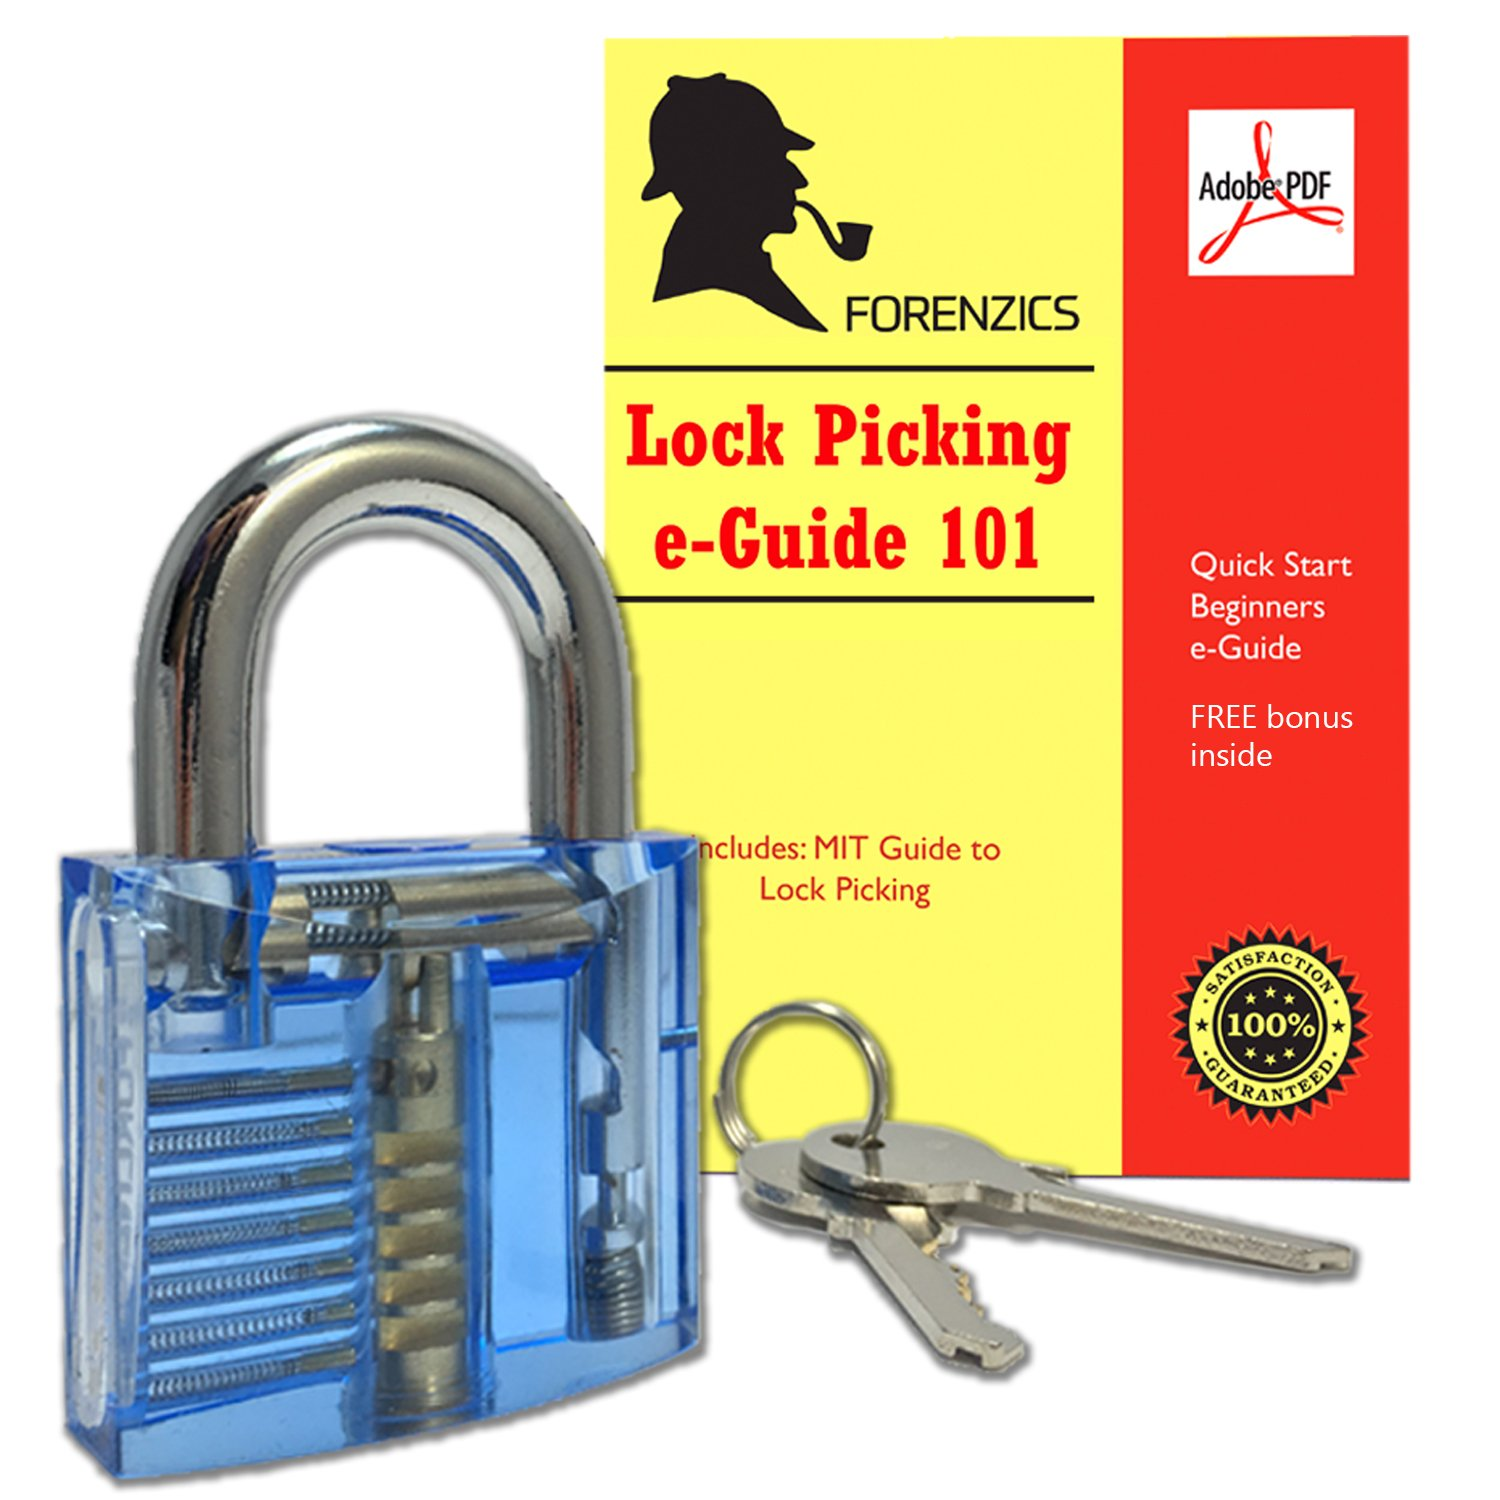 Amazon.com: Clear Lock with Quick Start Beginners e-Guide: Home Improvement